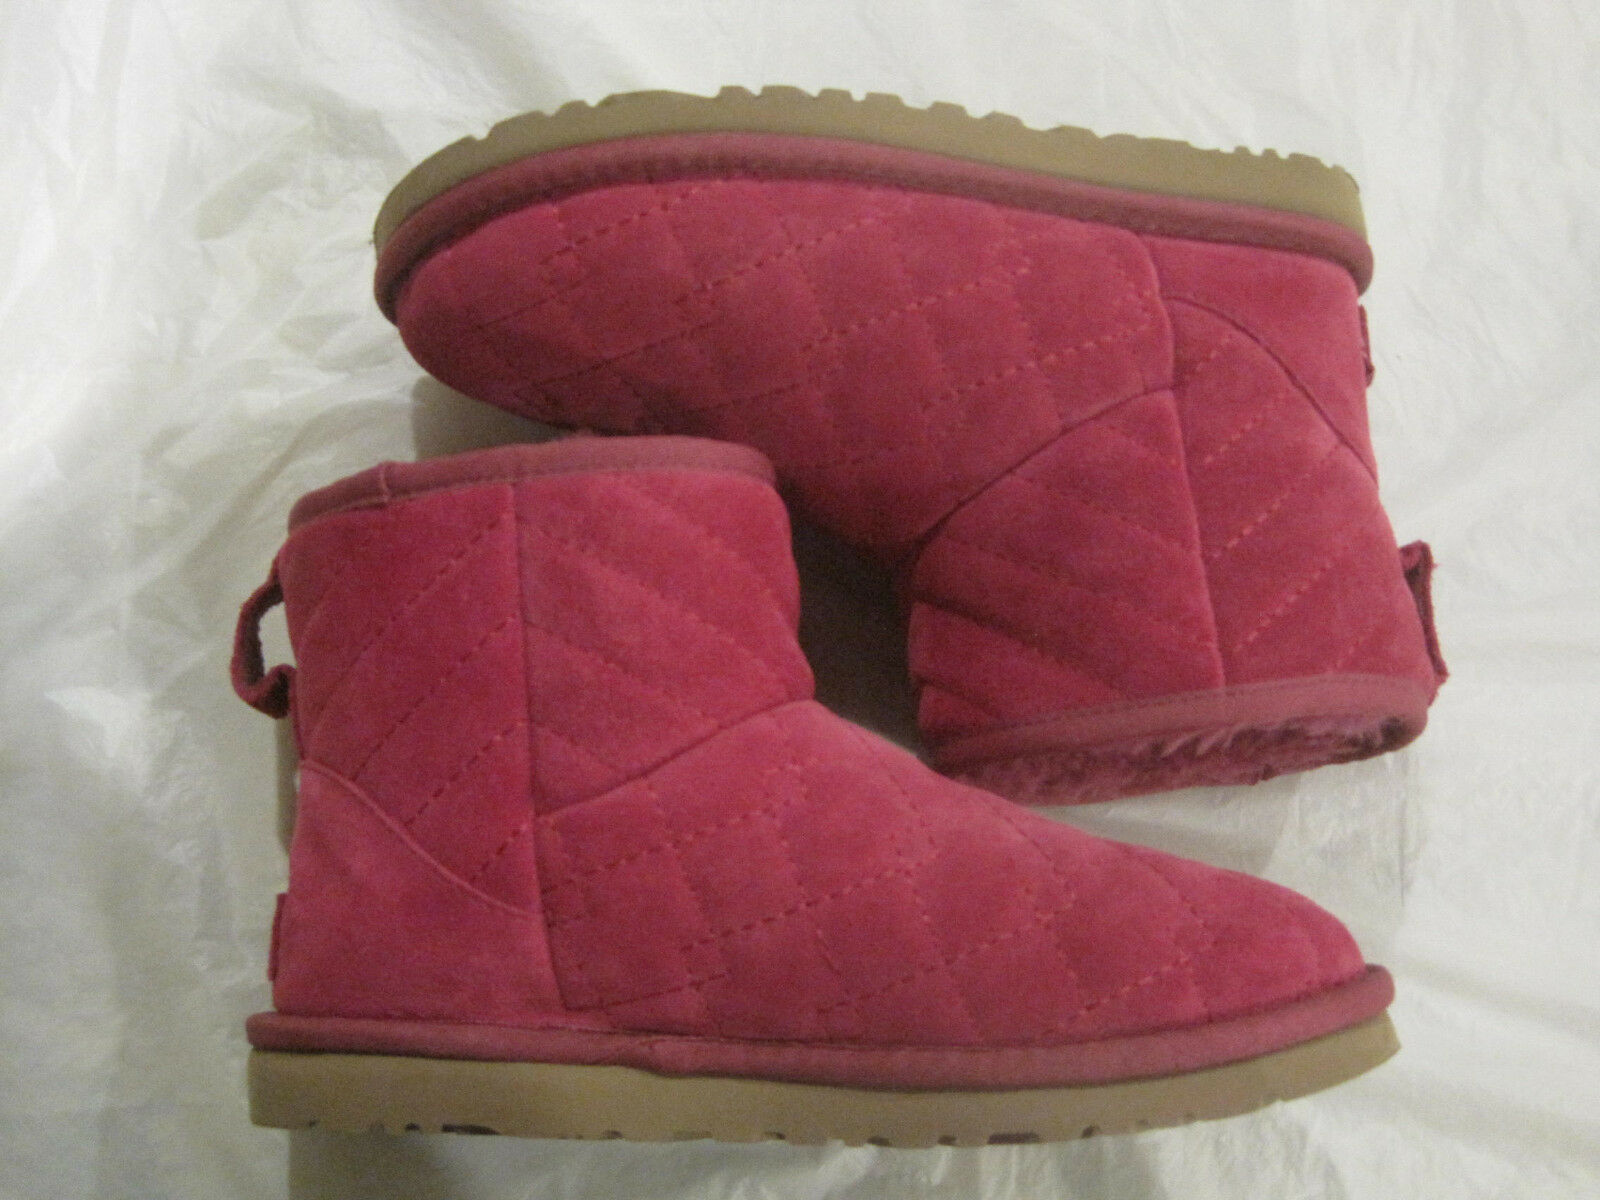 Ugg Arden StiefelQuilted Pink Fur with Fur Pink LiningGröße 6New w/boxLBDMB bbc621